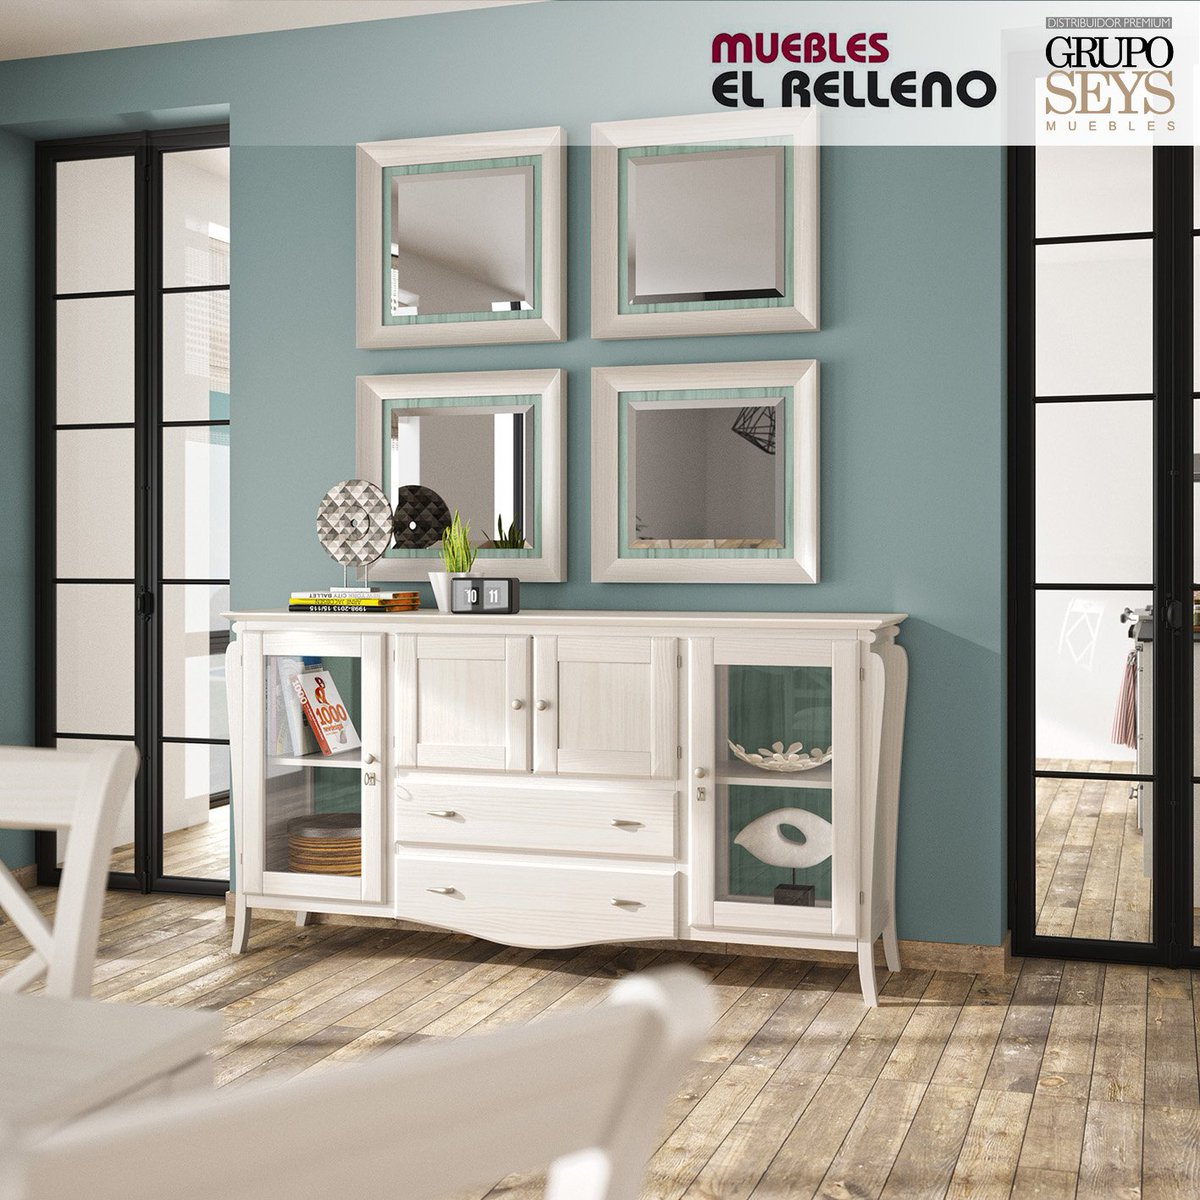 Spainfurniture Hashtag On Twitter # Muebles Relleno Solana